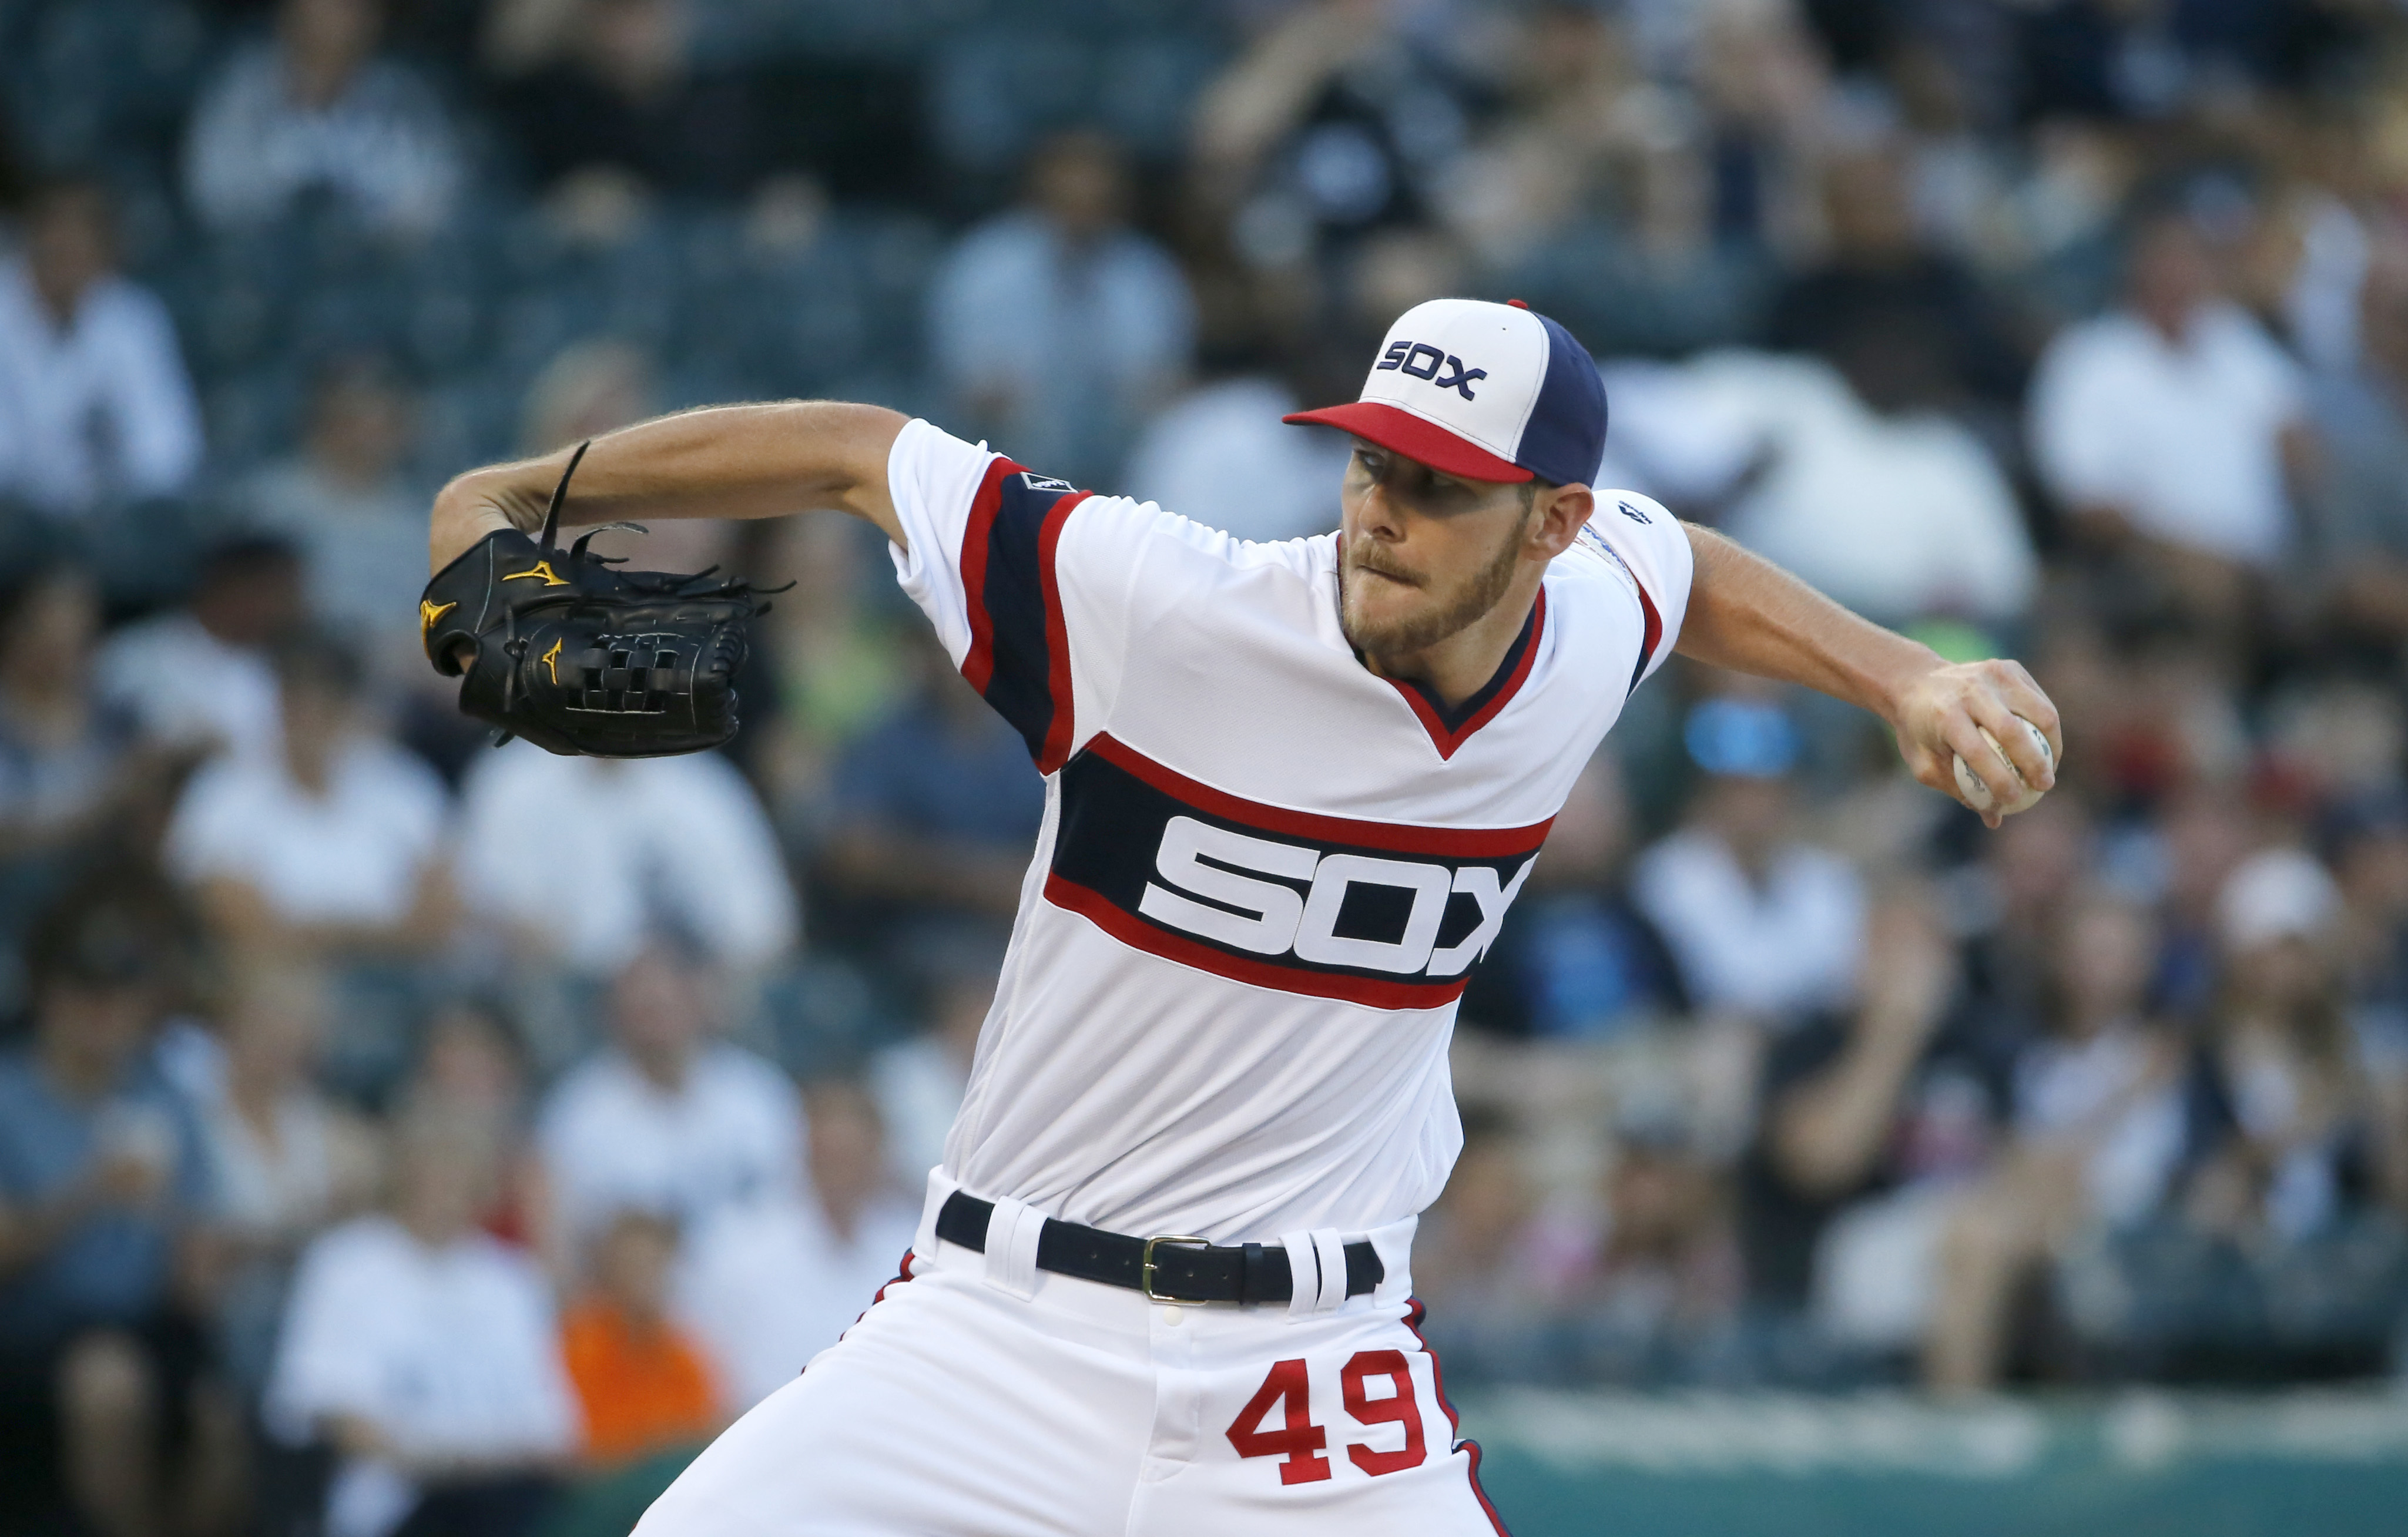 Chicago White Sox starting pitcher Chris Sale delivers during the first inning of a baseball game against the Detroit Tigers Wednesday, June 15, 2016, in Chicago. (AP Photo/Charles Rex Arbogast)